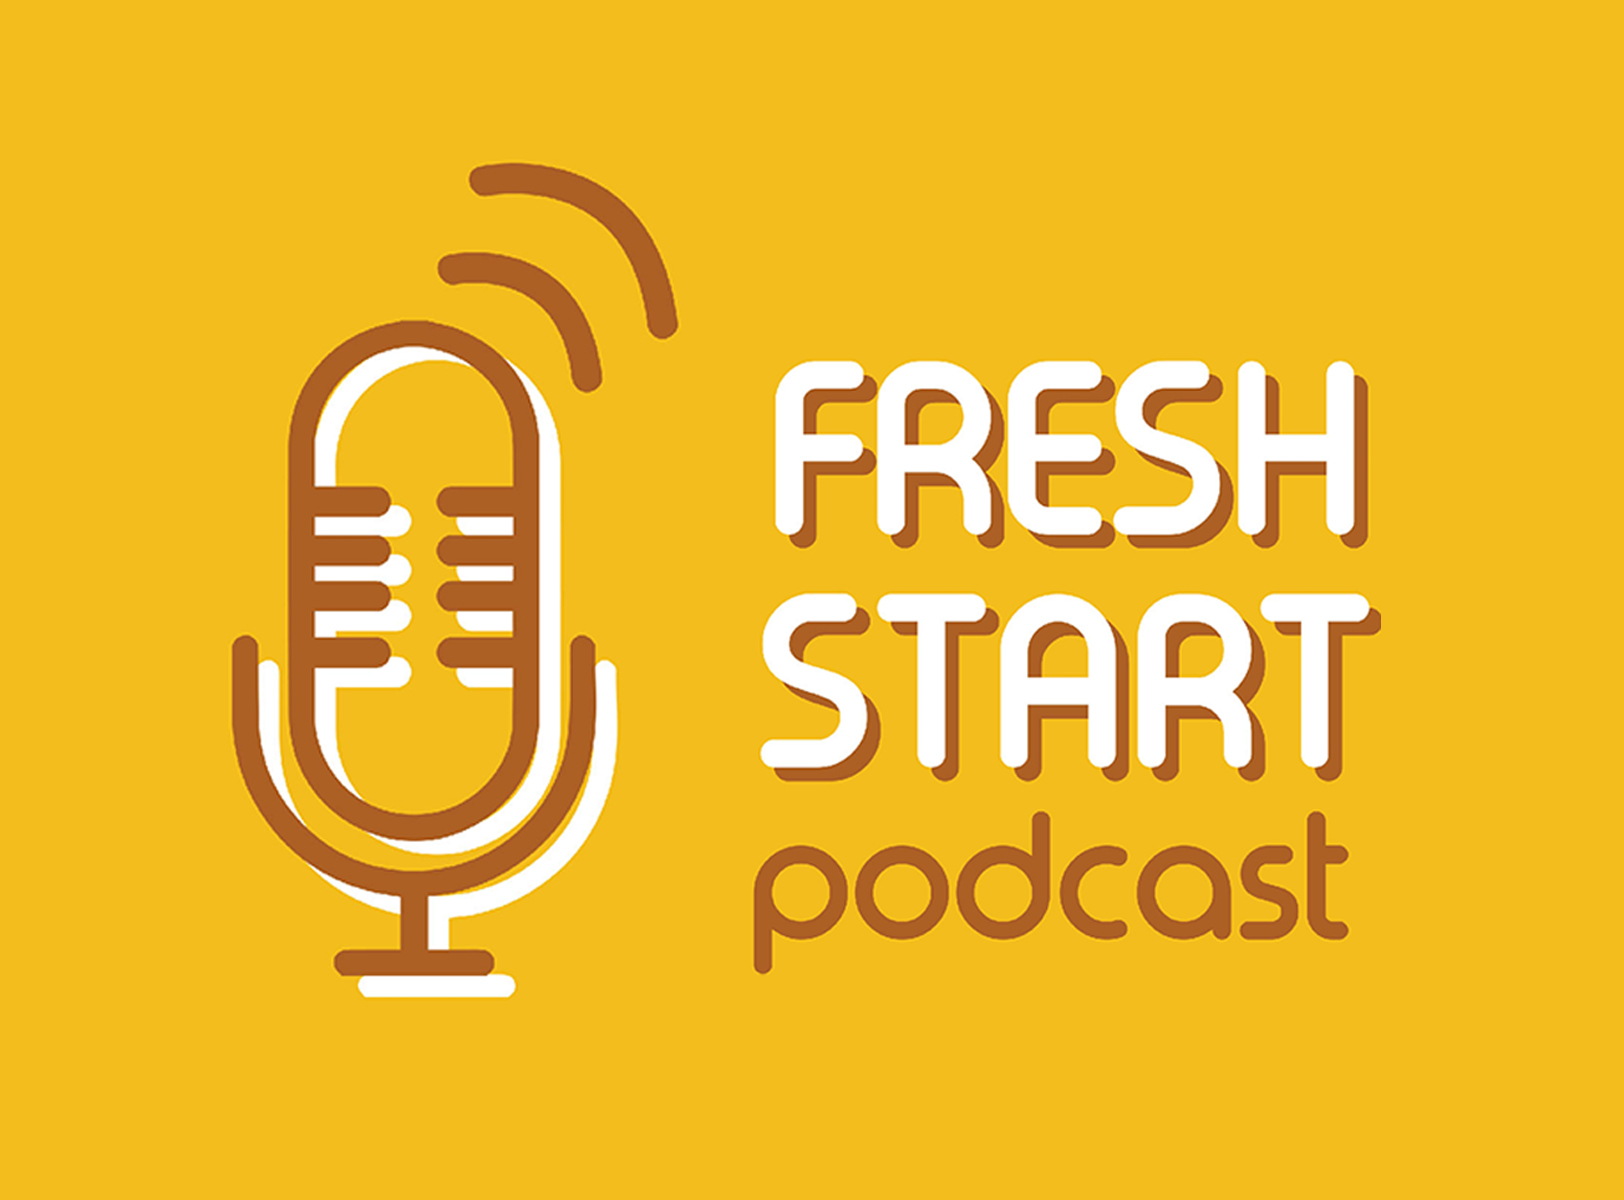 Fresh Start: Podcast News (2/8/2019 Fri.)